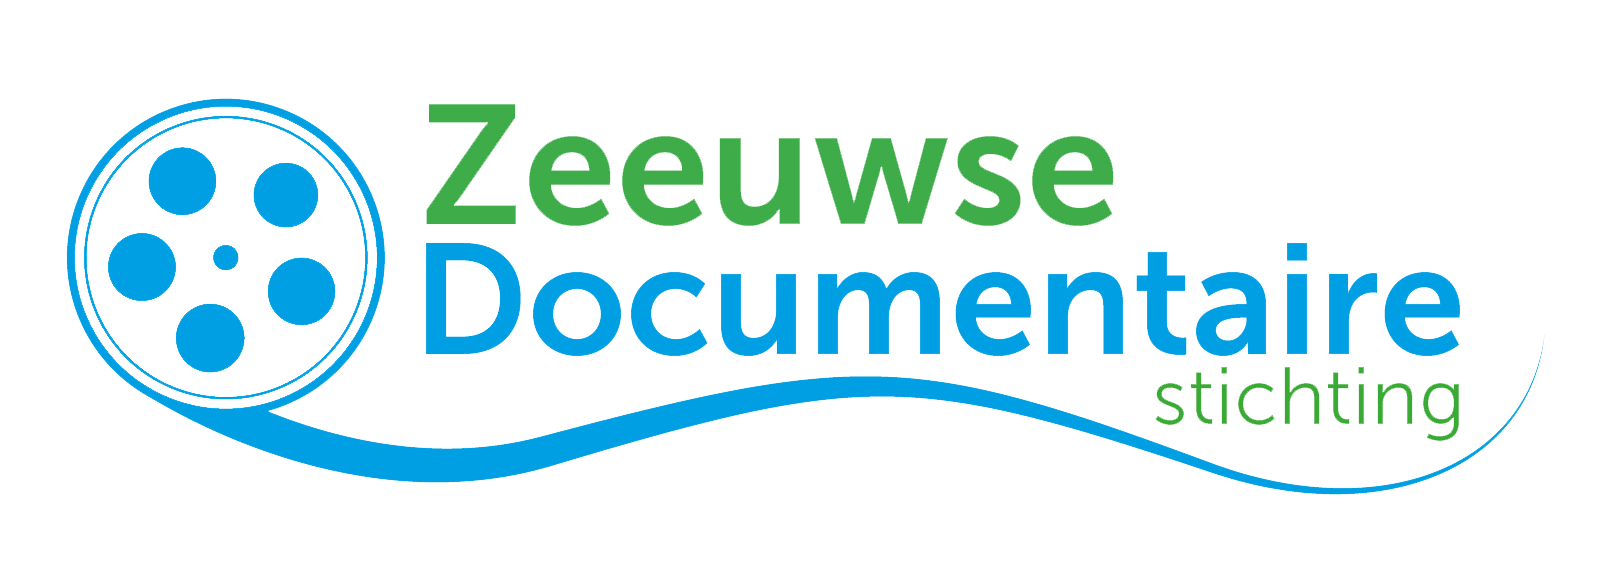 Zeeuwse-Documentaire-Stichting-logo